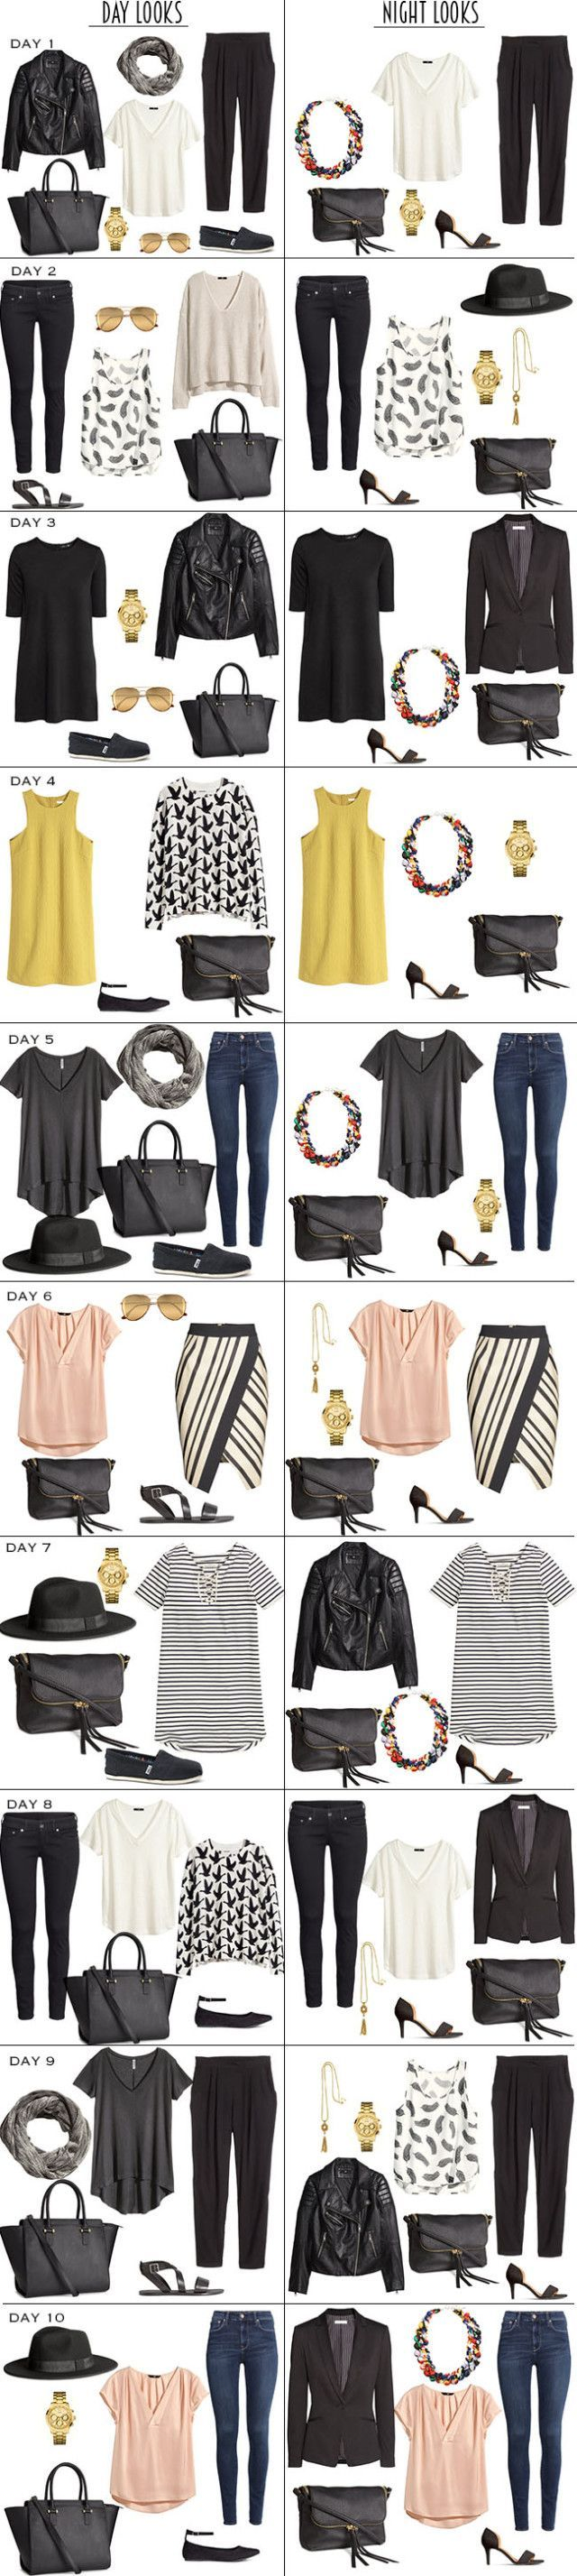 Style for over 35 ~ Packing Light for 10 Days in Copenhagen, Denmark. These are the 10 Day and 10 Night Looks. A full packing list is available on the Blog.